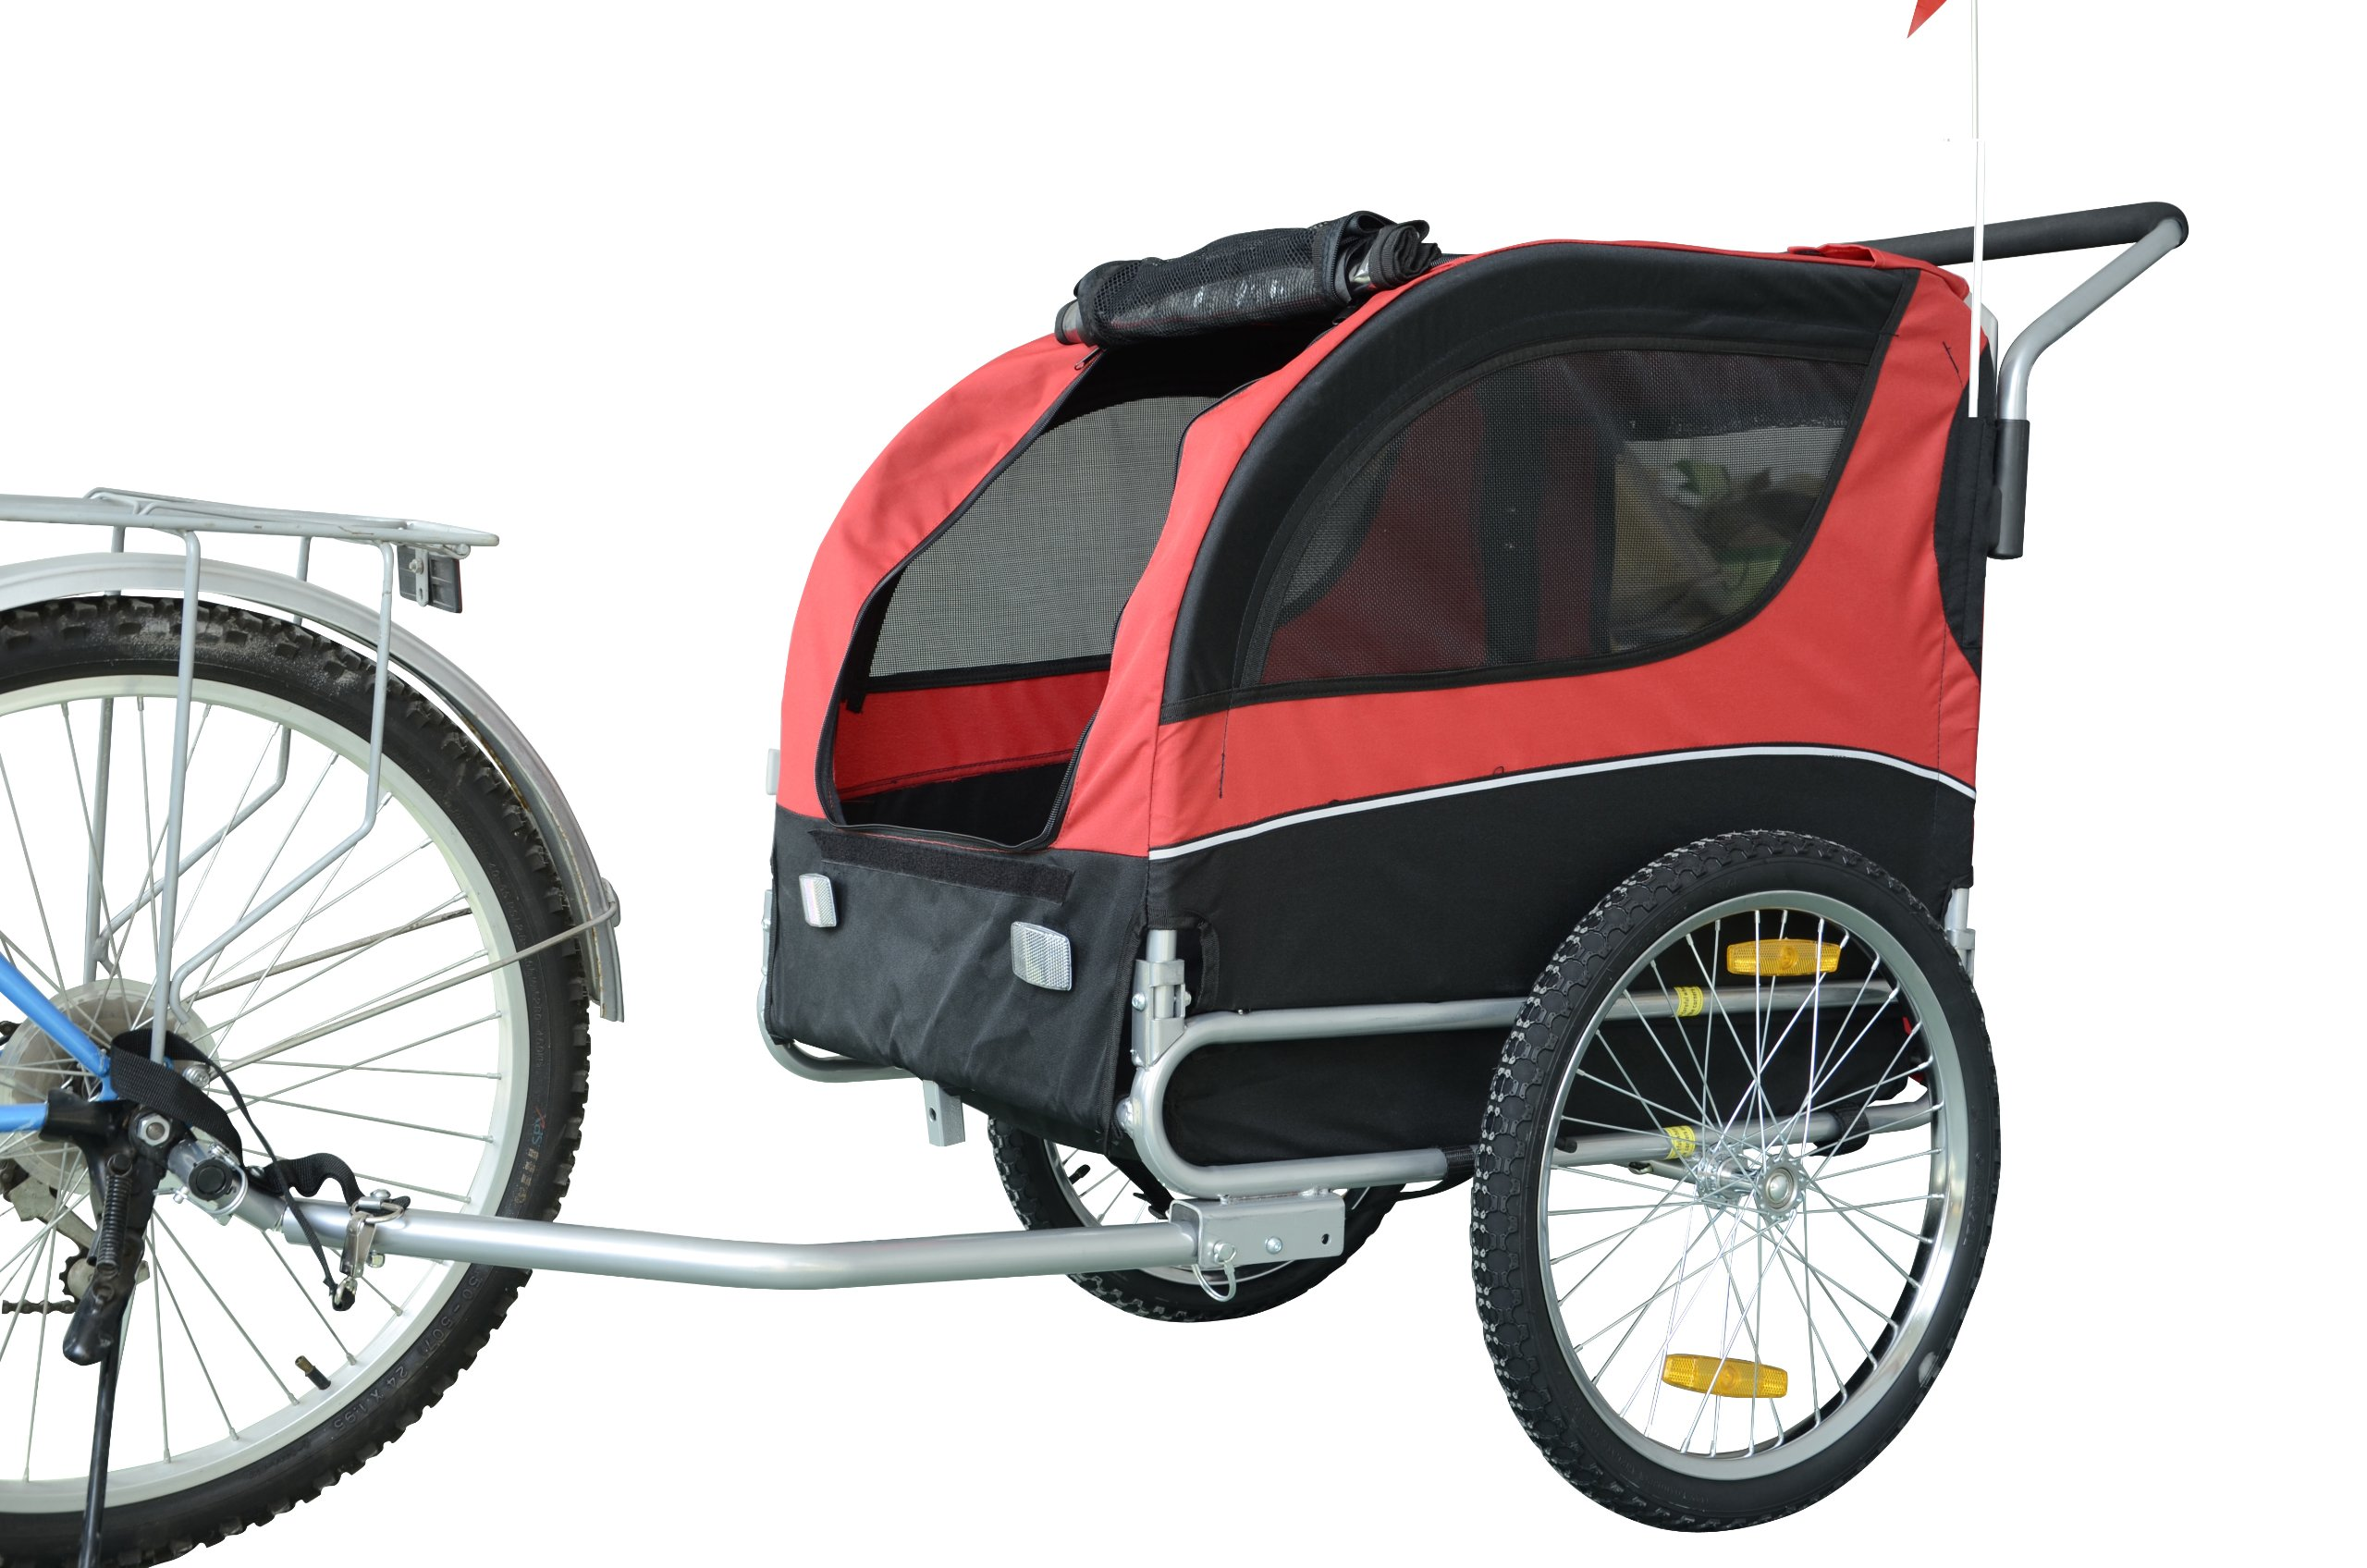 MDOG2 MK0065A Comfy Pet Bike Trailer, Red/Black by MDOG2